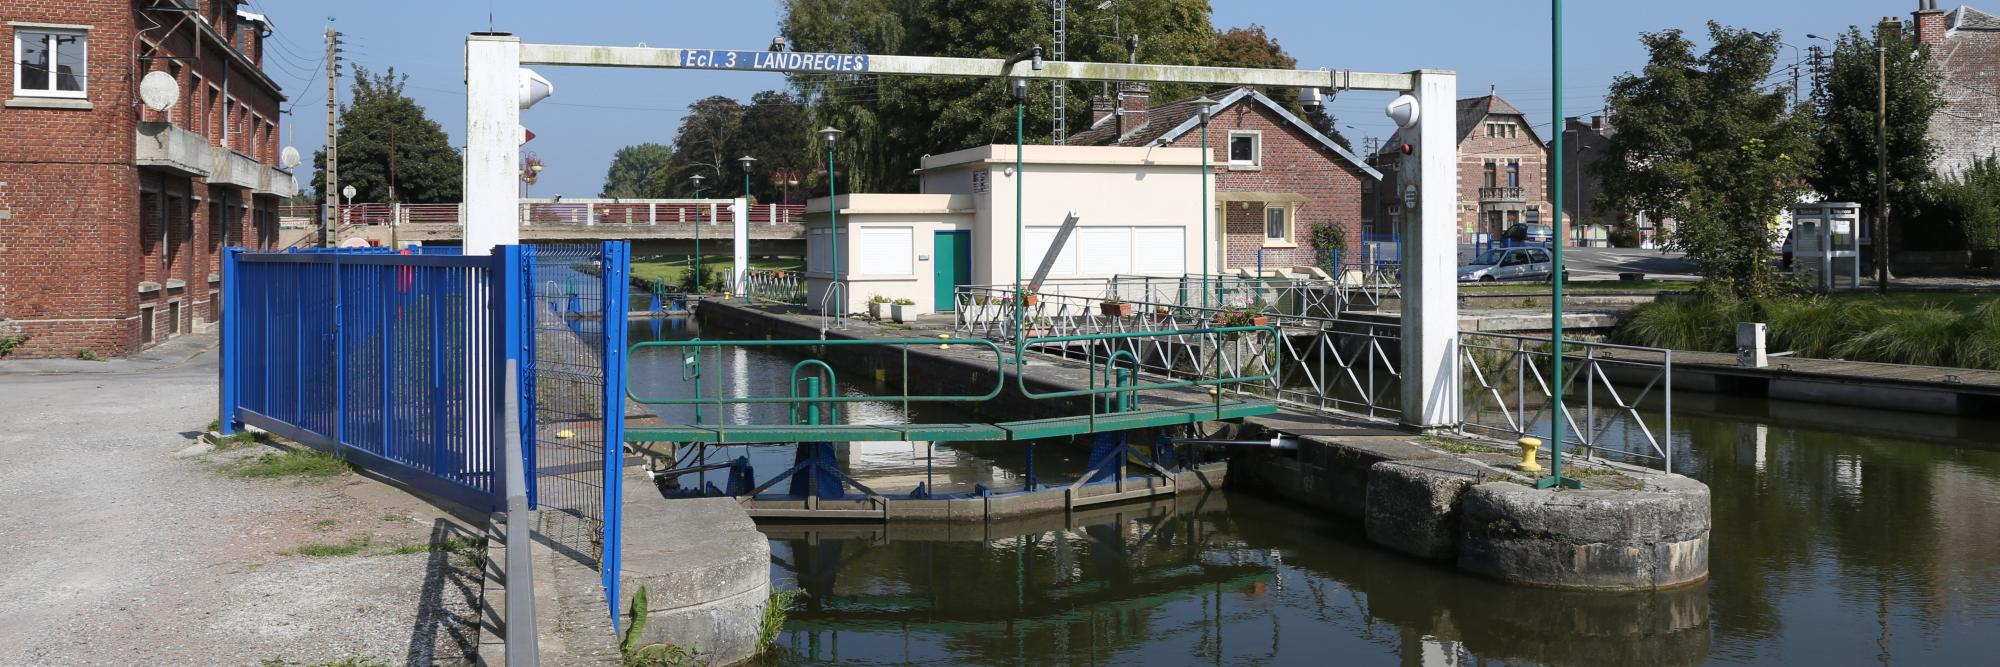 Sluis 3 de Landrecies